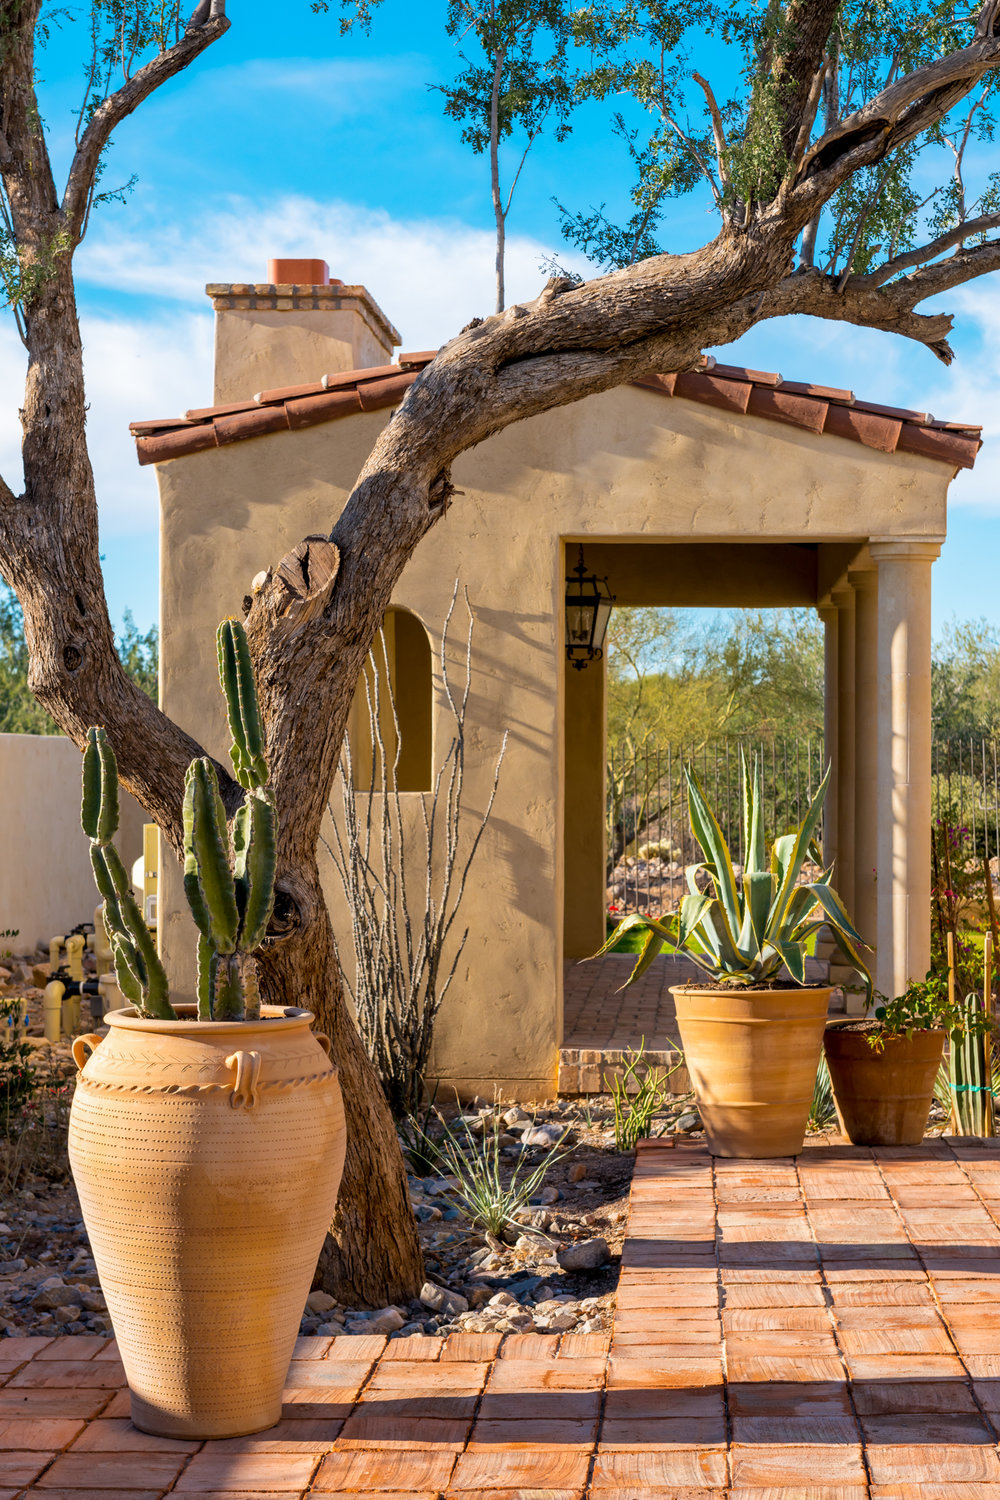 Silverleaf Home_Architecture_An Pham Photography_A853912.jpg